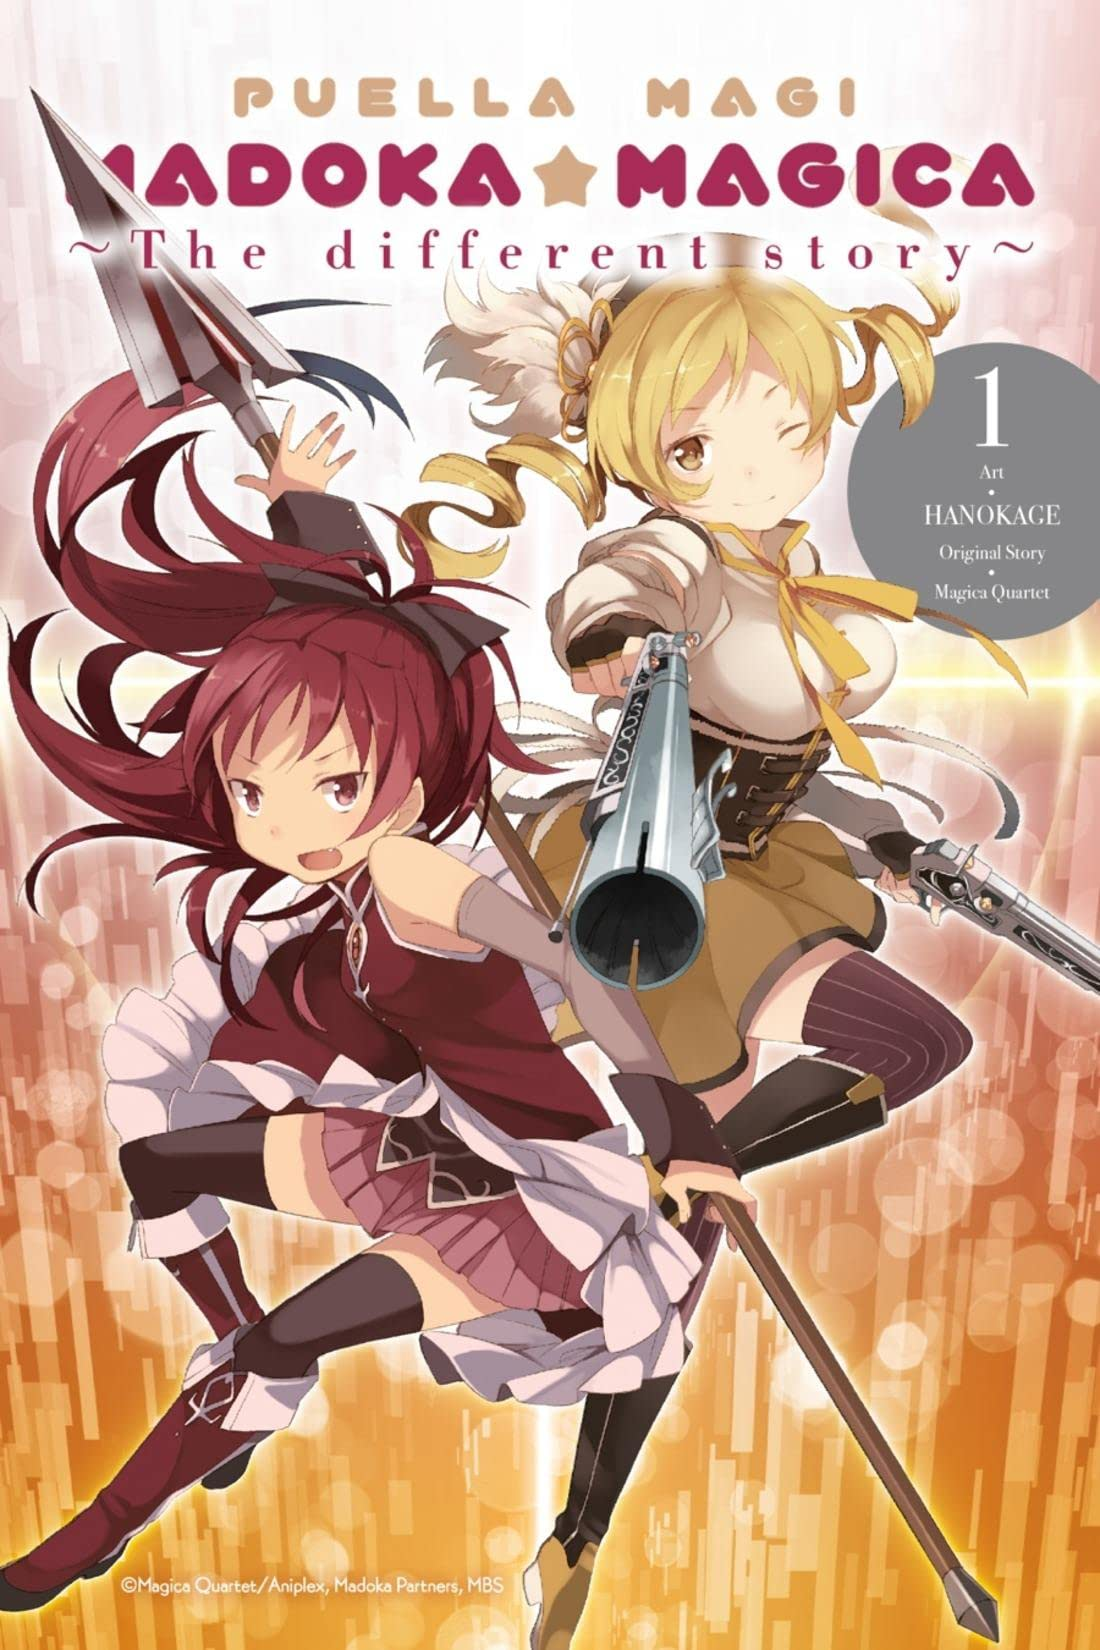 Puella Magi Madoka Magica Vol. 1: The Different Story